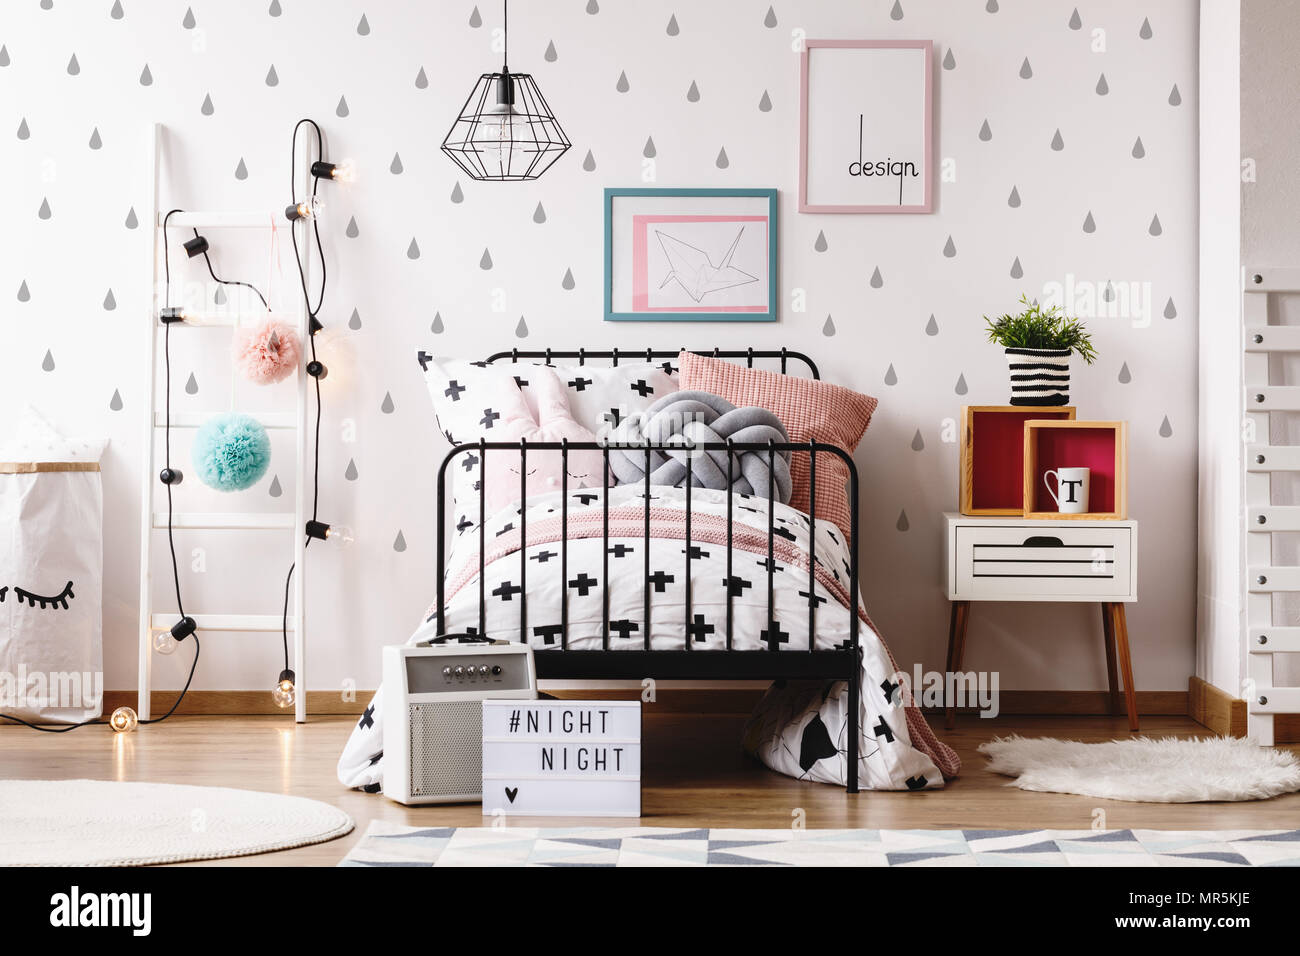 Cute Pillows On Bed Against White Wallpaper With Grey Teardrops In